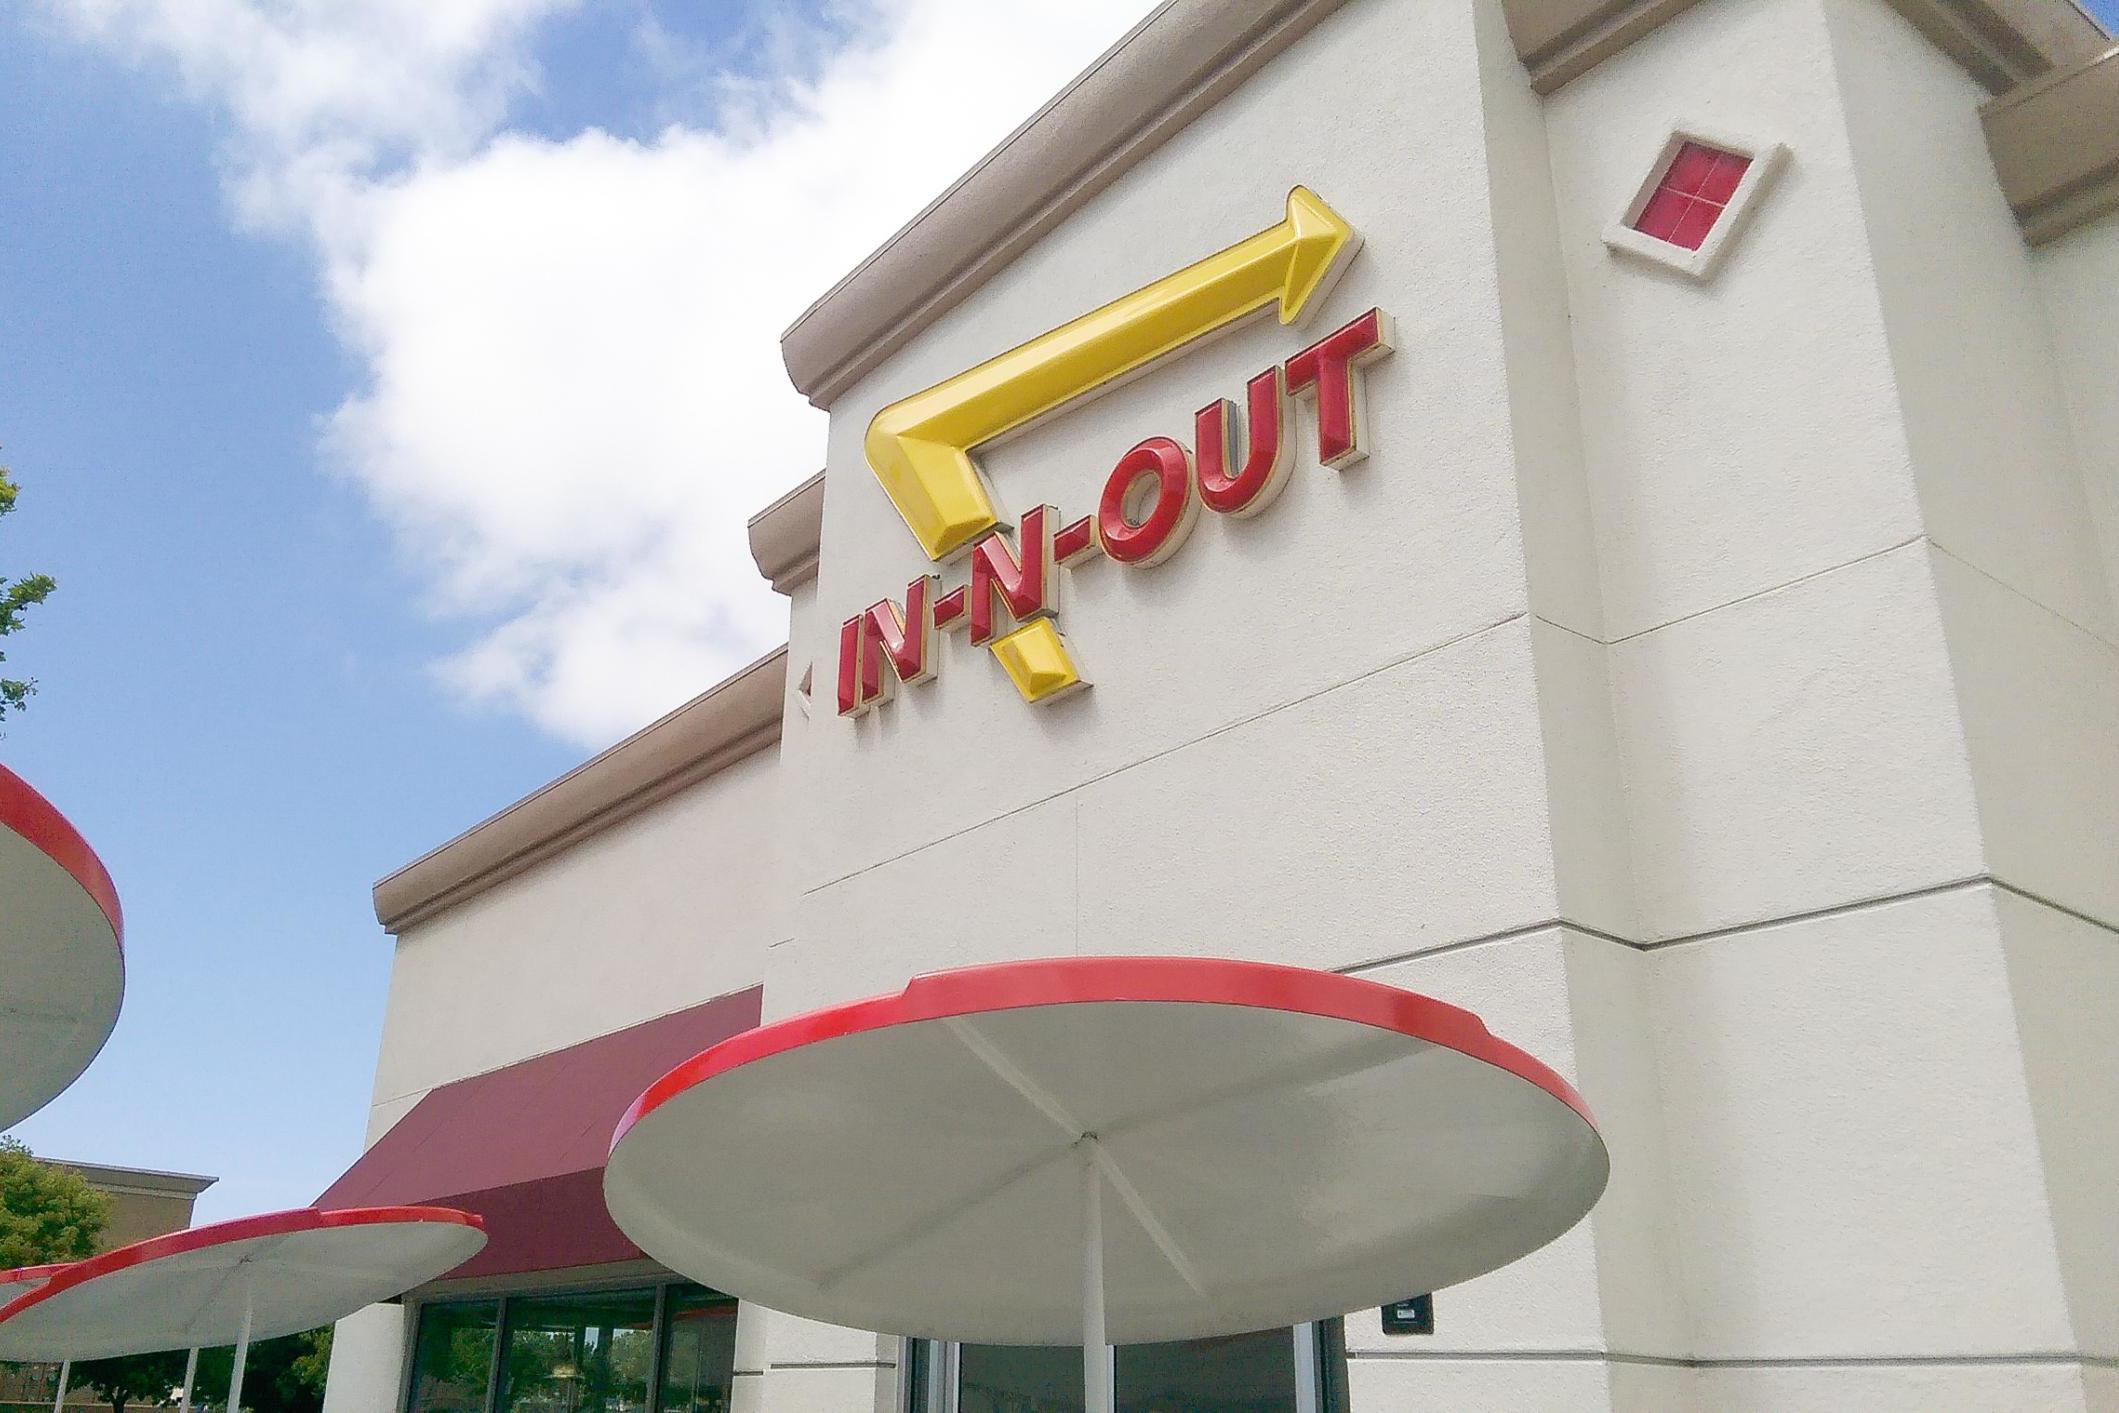 In-N-Out Burger donates $25,000 to the Republican Party, sparking uproar and boycotts